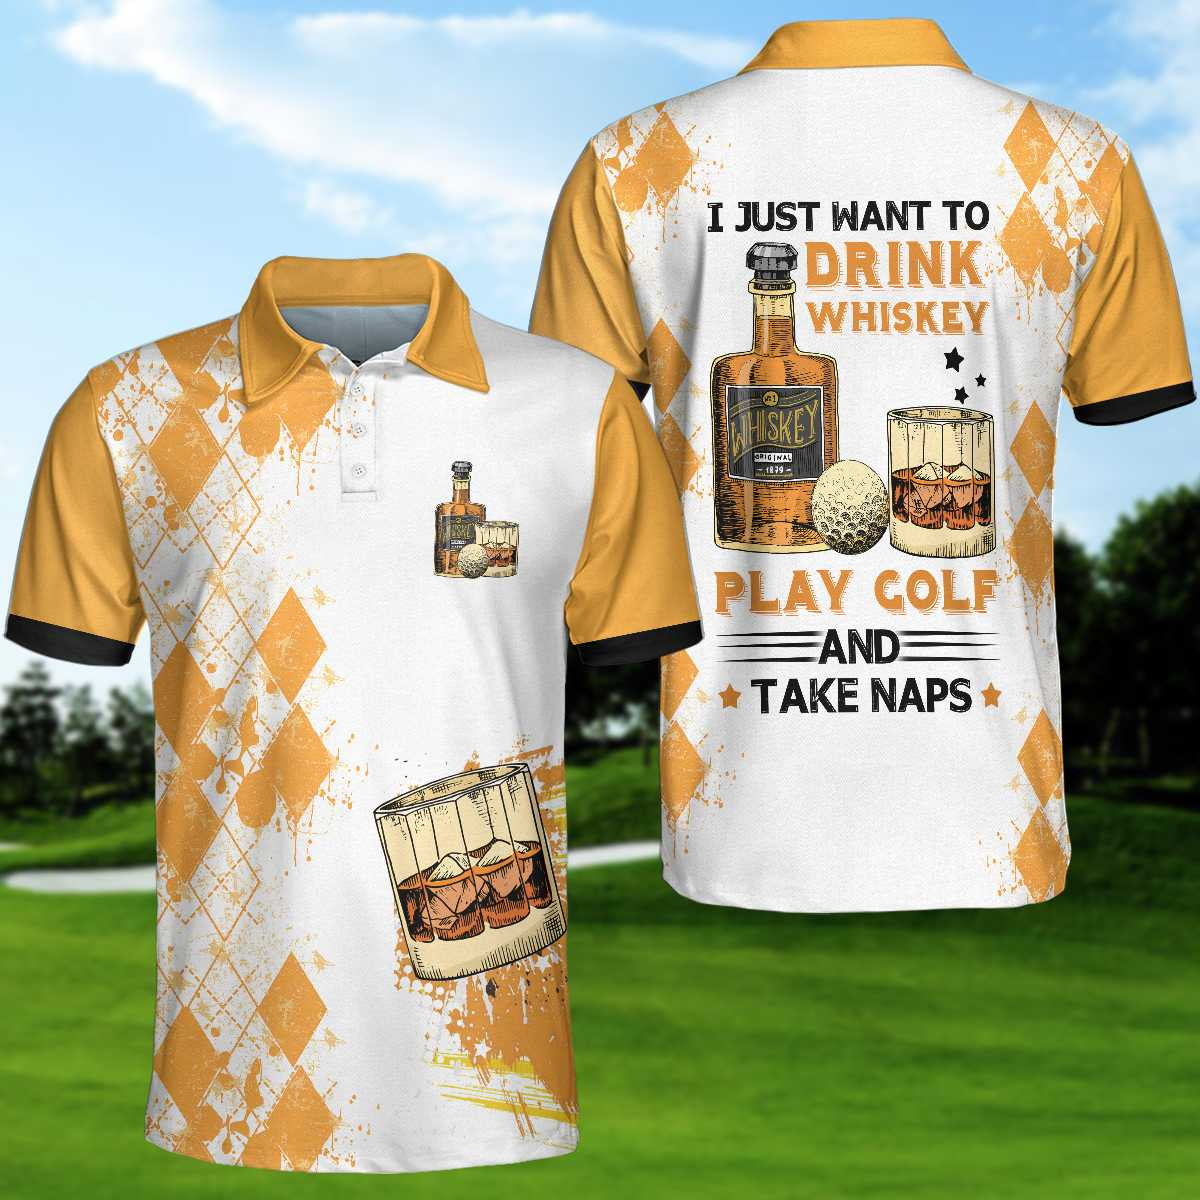 Golf Whisky And Take Naps V2 EZ20 0304 Polo Shirt